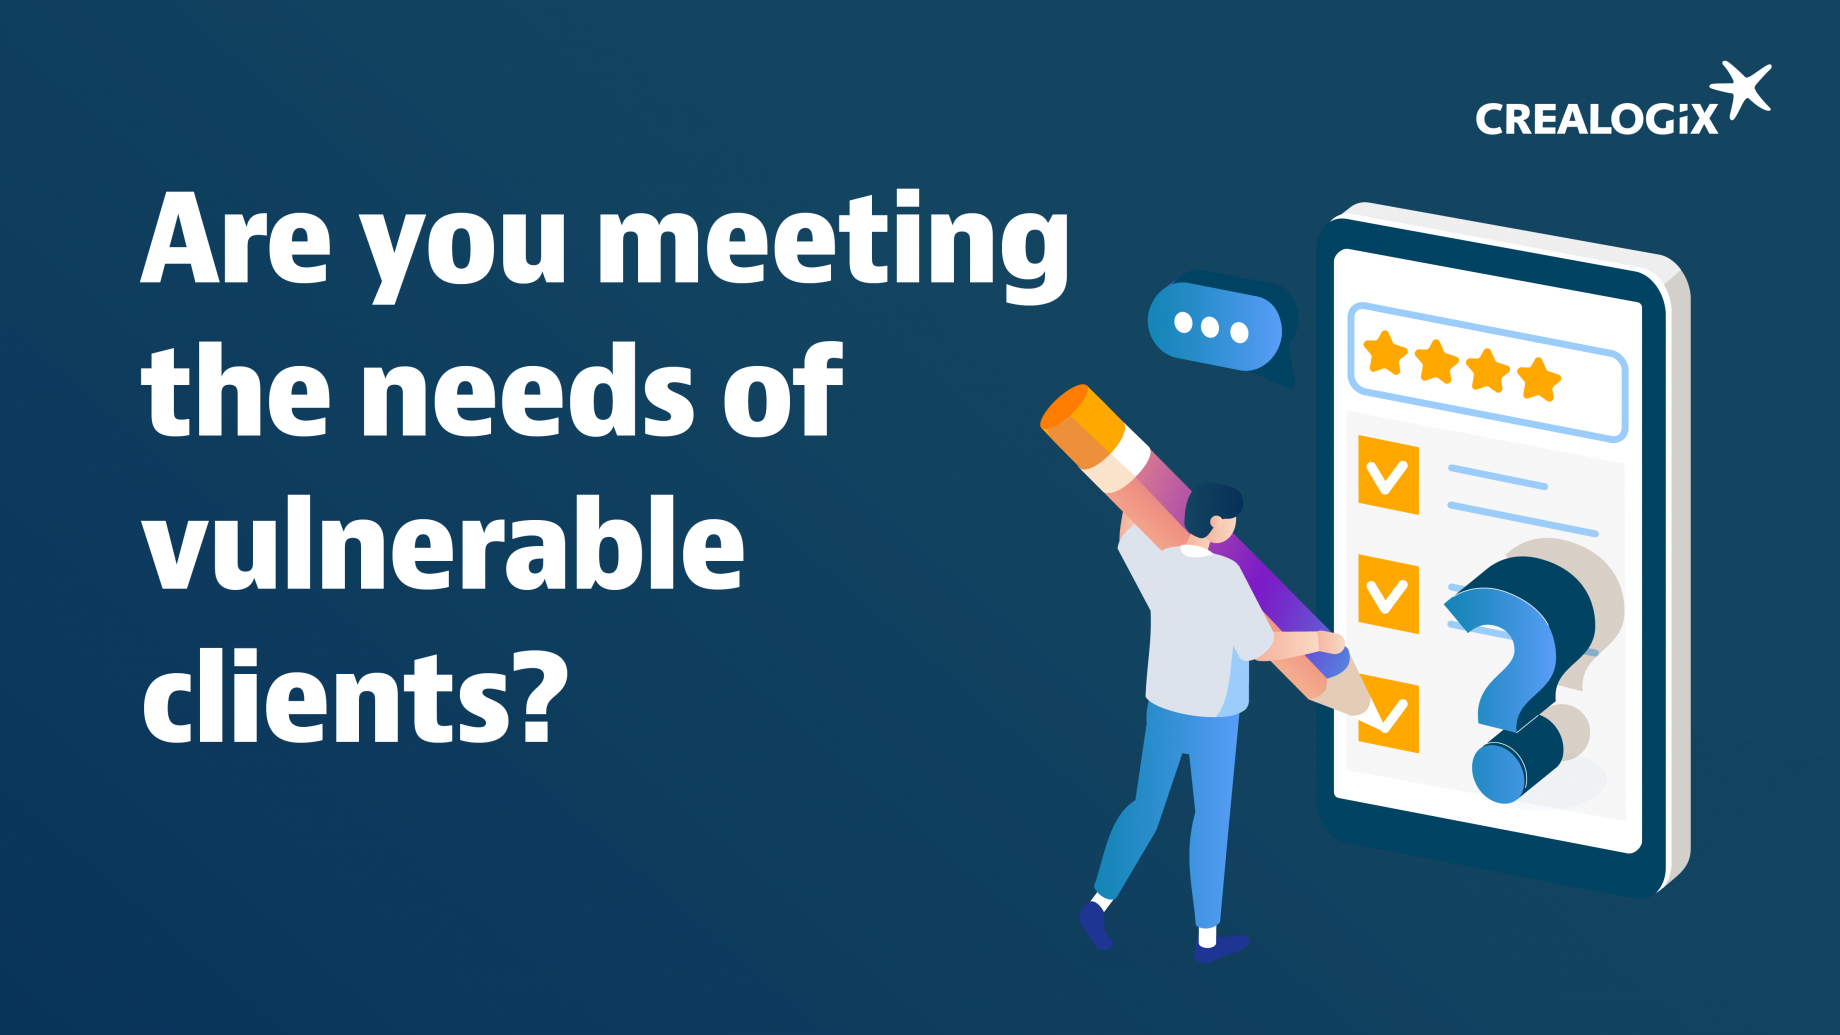 Are you meeting the needs of vulnerable clients?